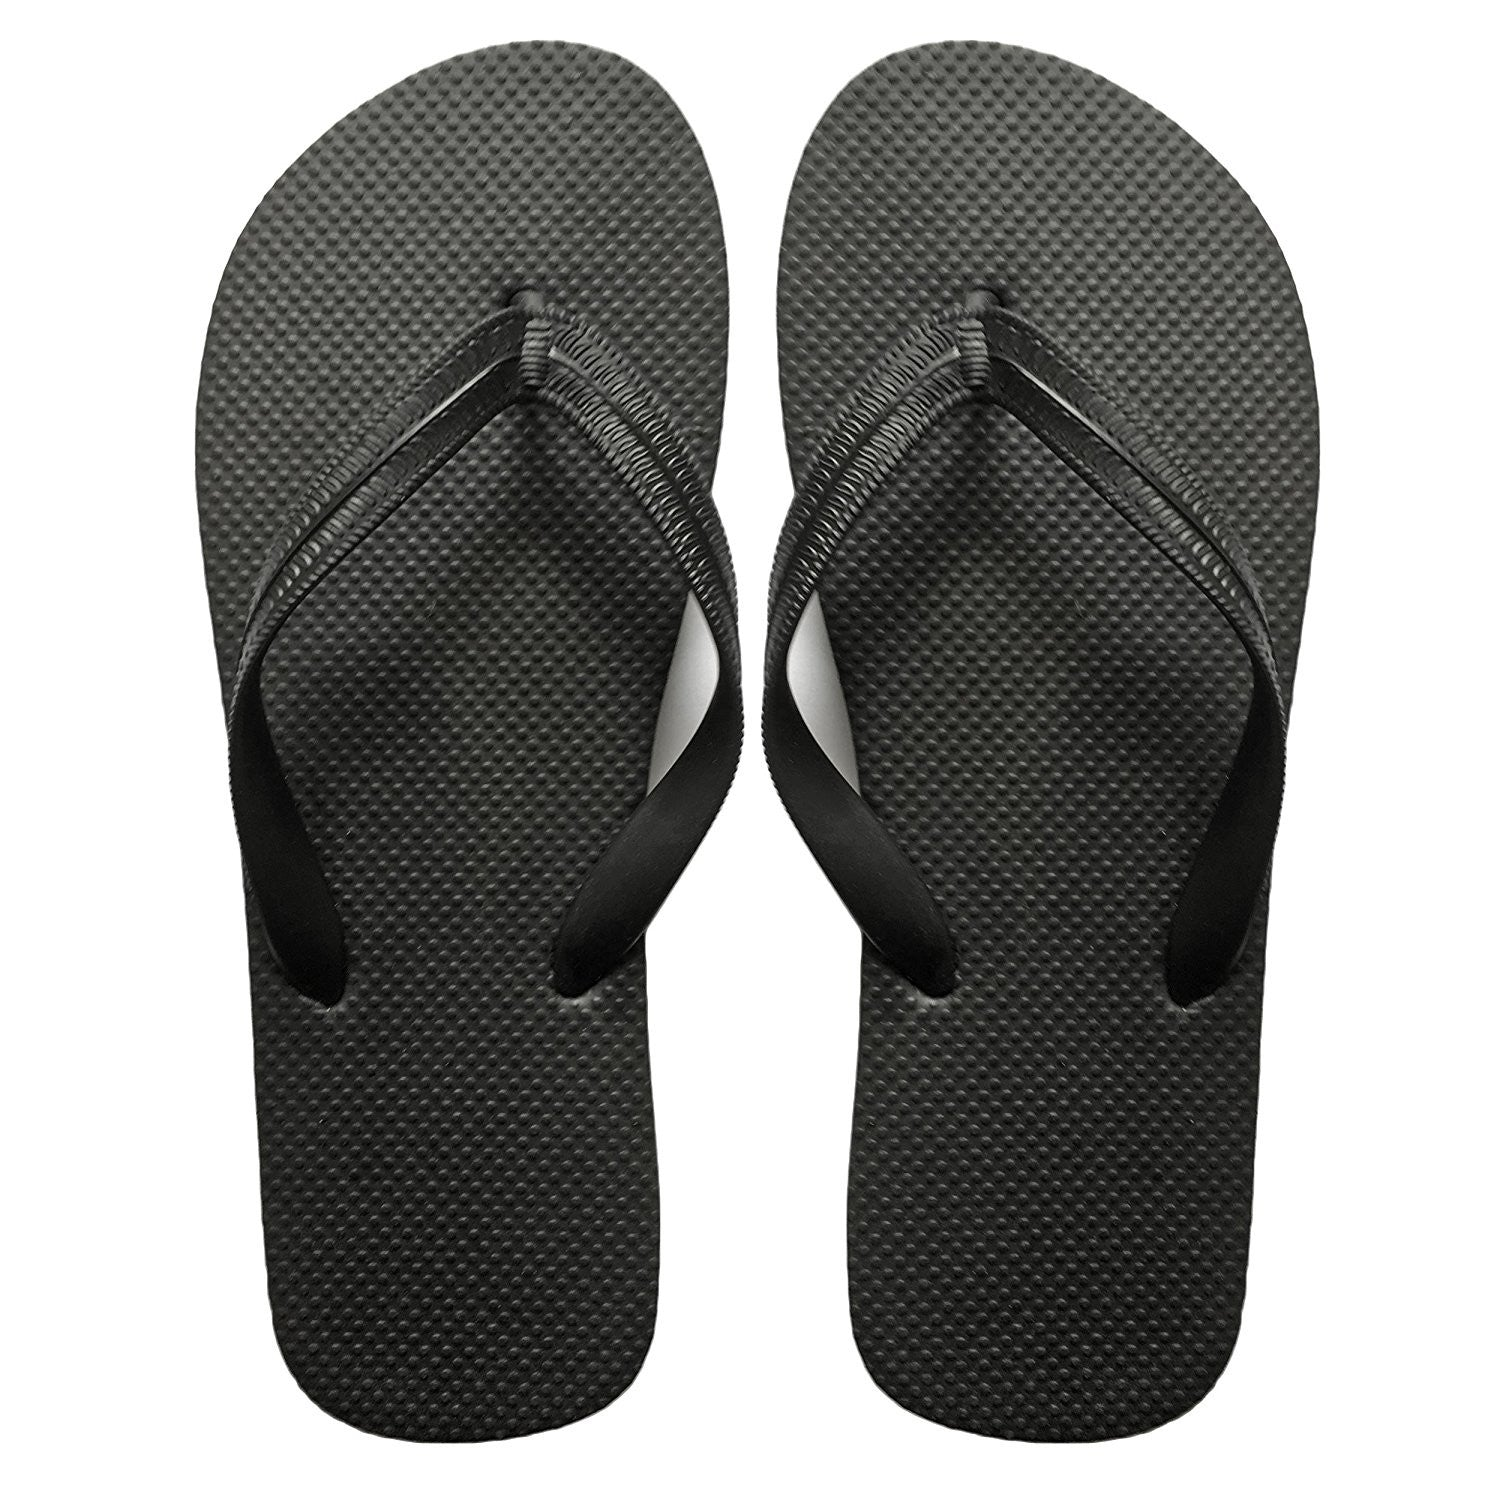 Women's  Soft Comfortable Rubber Flip Flop Thong Sandal